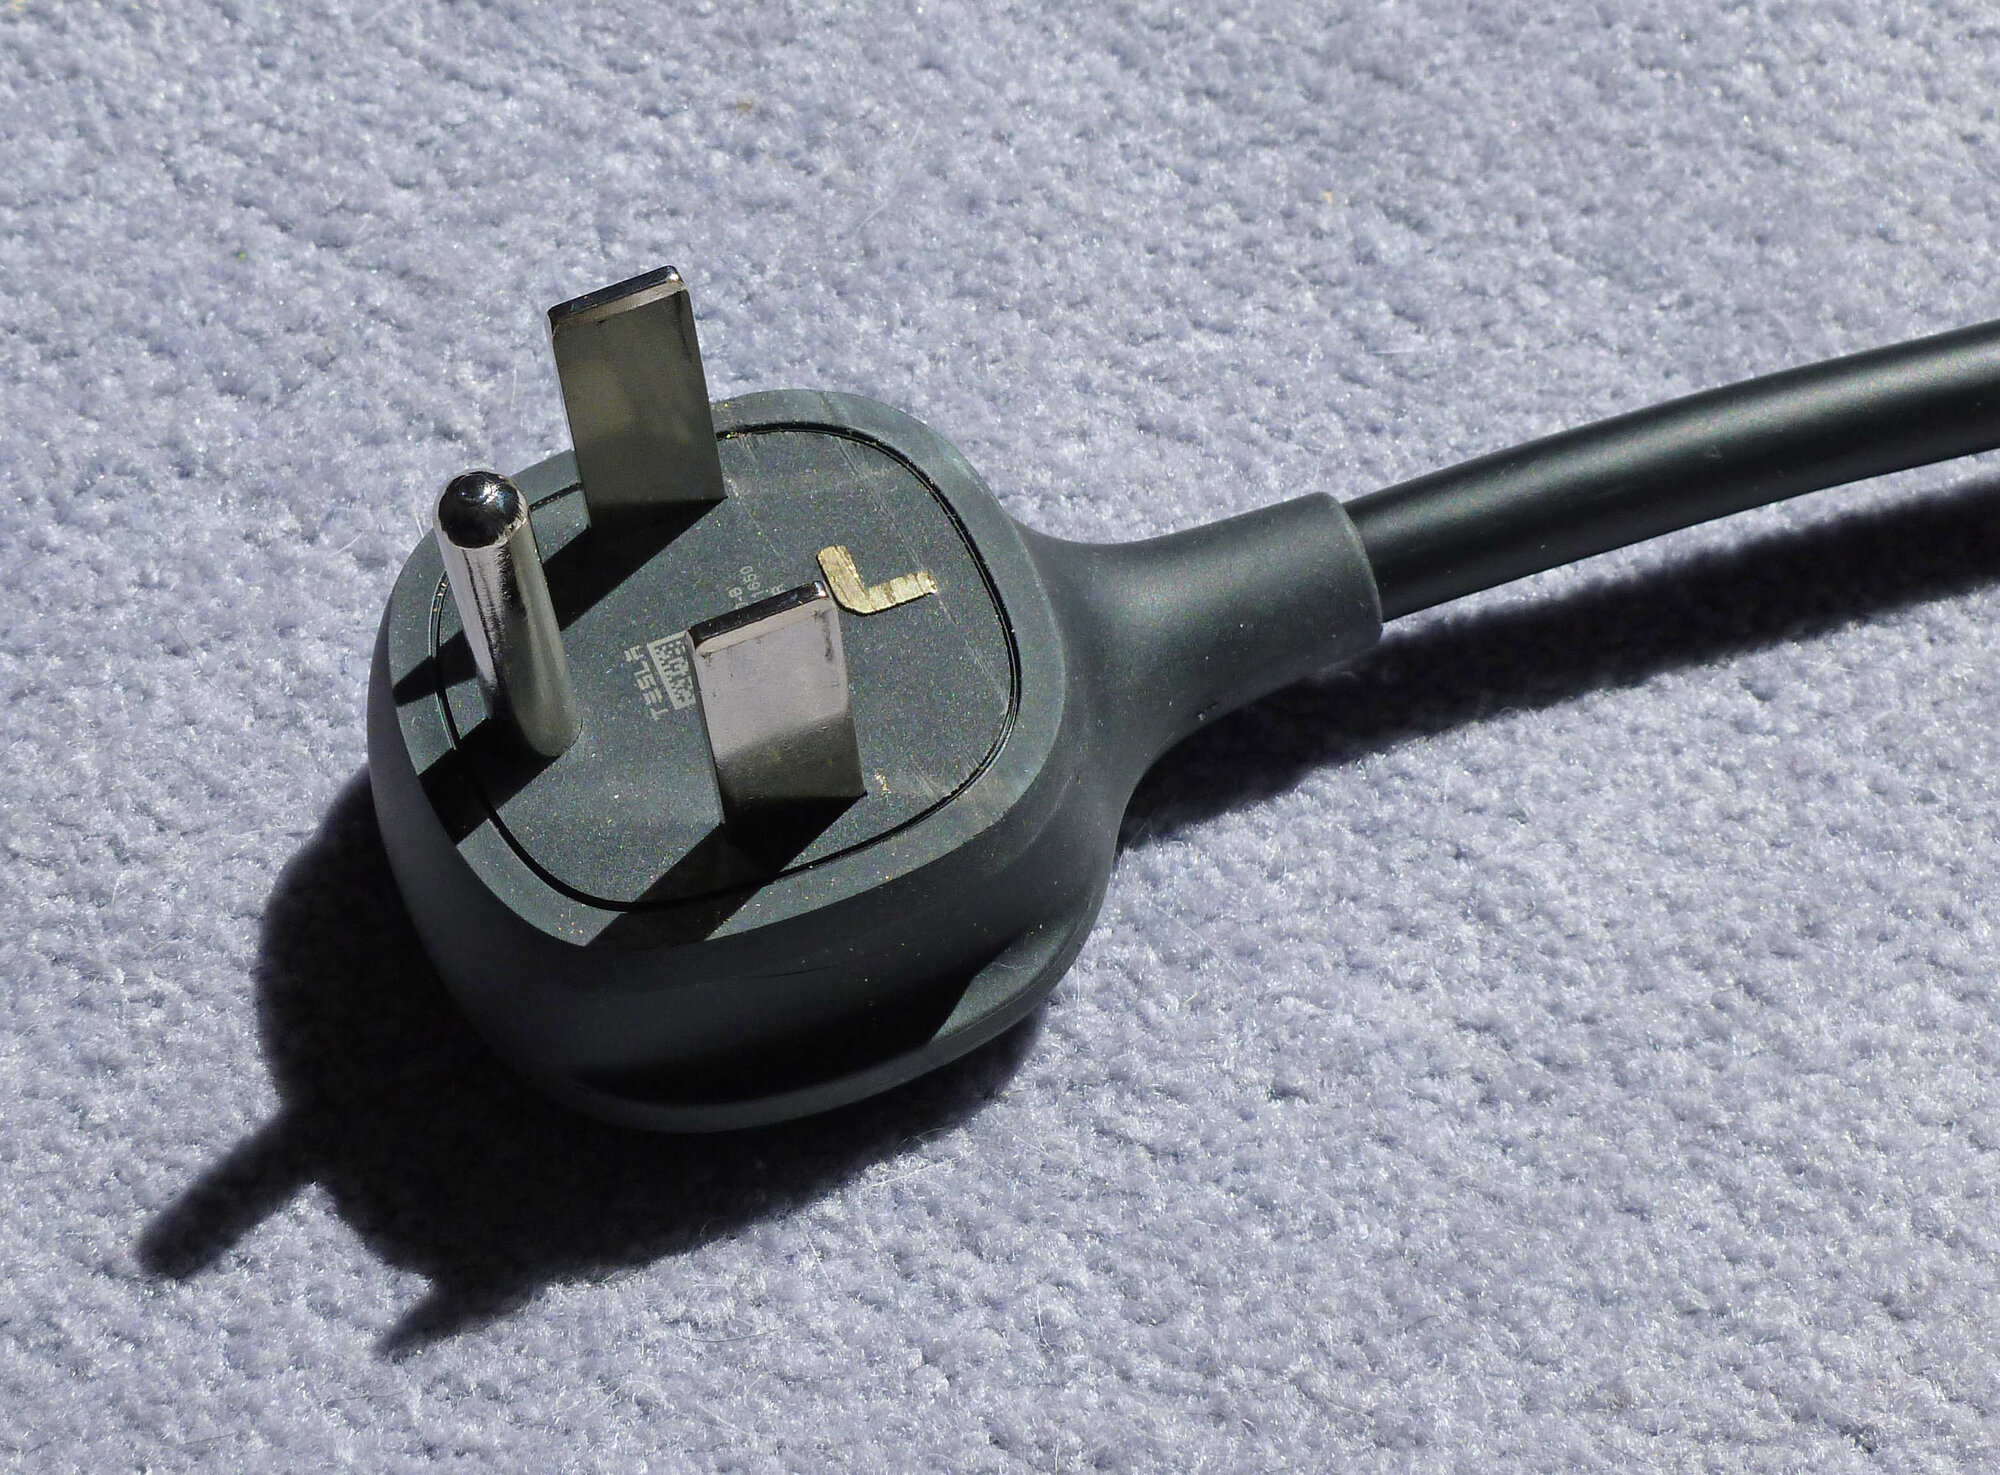 14-30 adapter with neutral pin removed2352crop 3-26-20.JPG